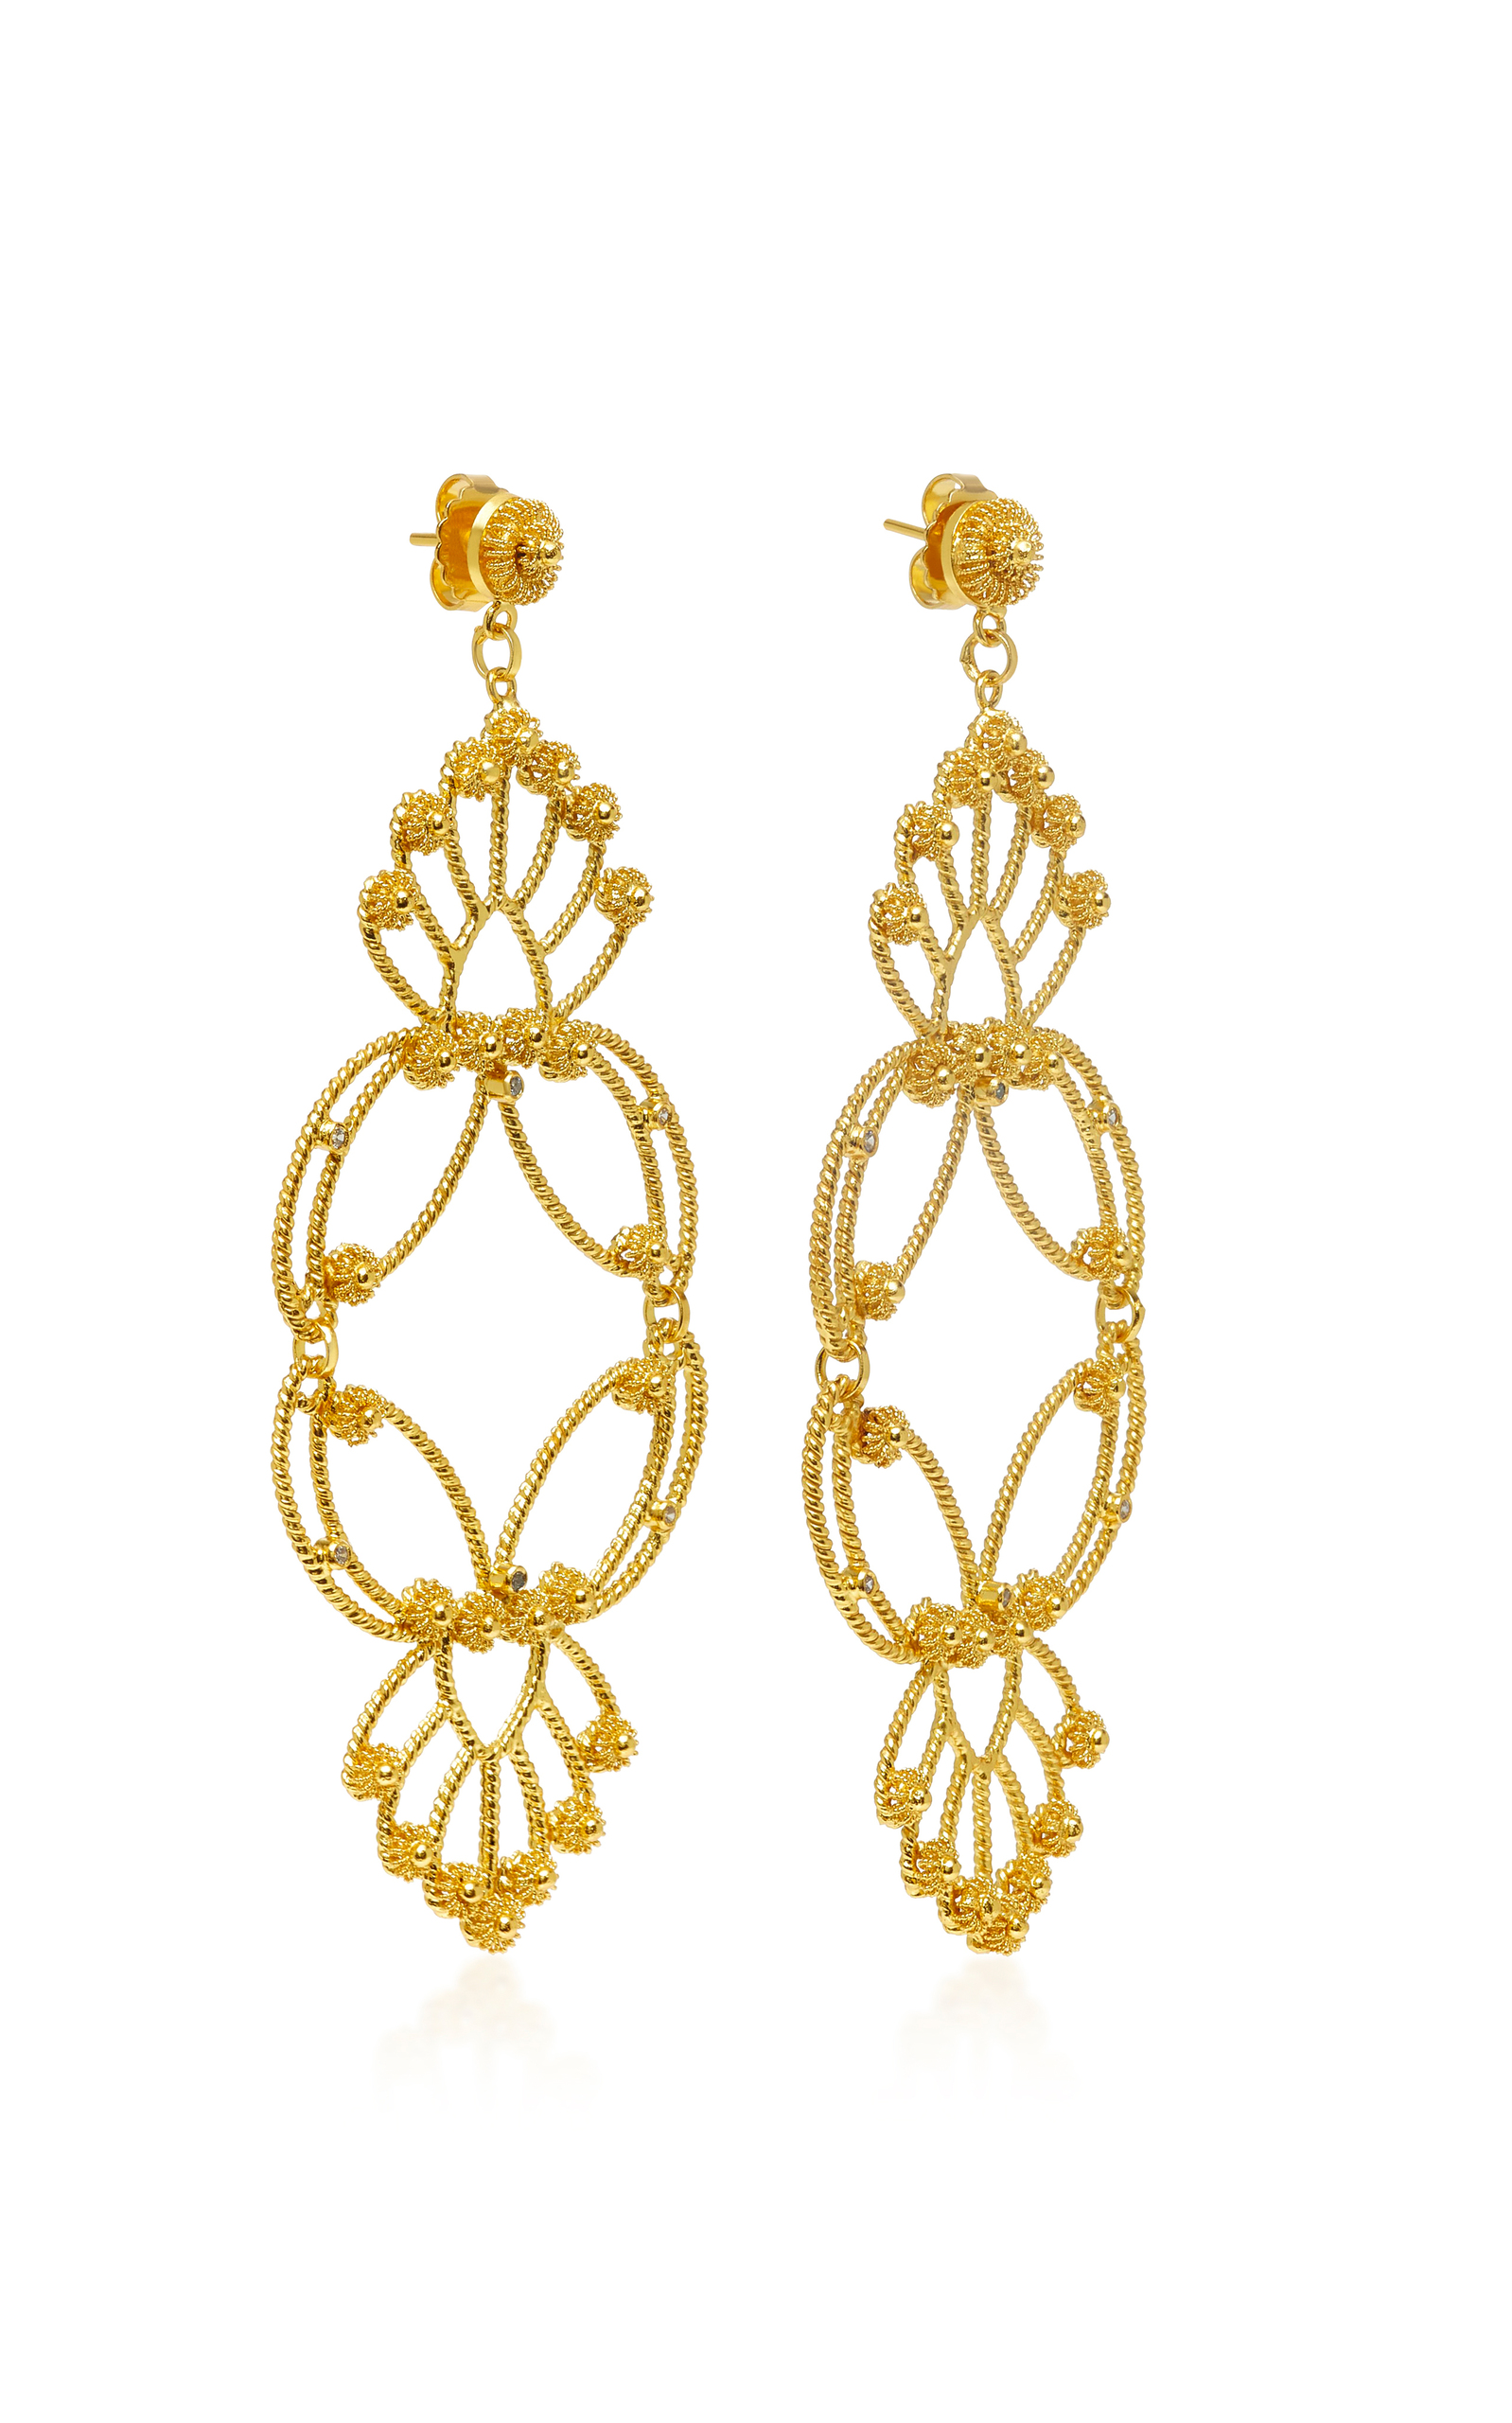 gift beautyful golden parmar earrings tops sppjt jewellery pune designer in jewellers jewellersparmar gold shop goldearrings